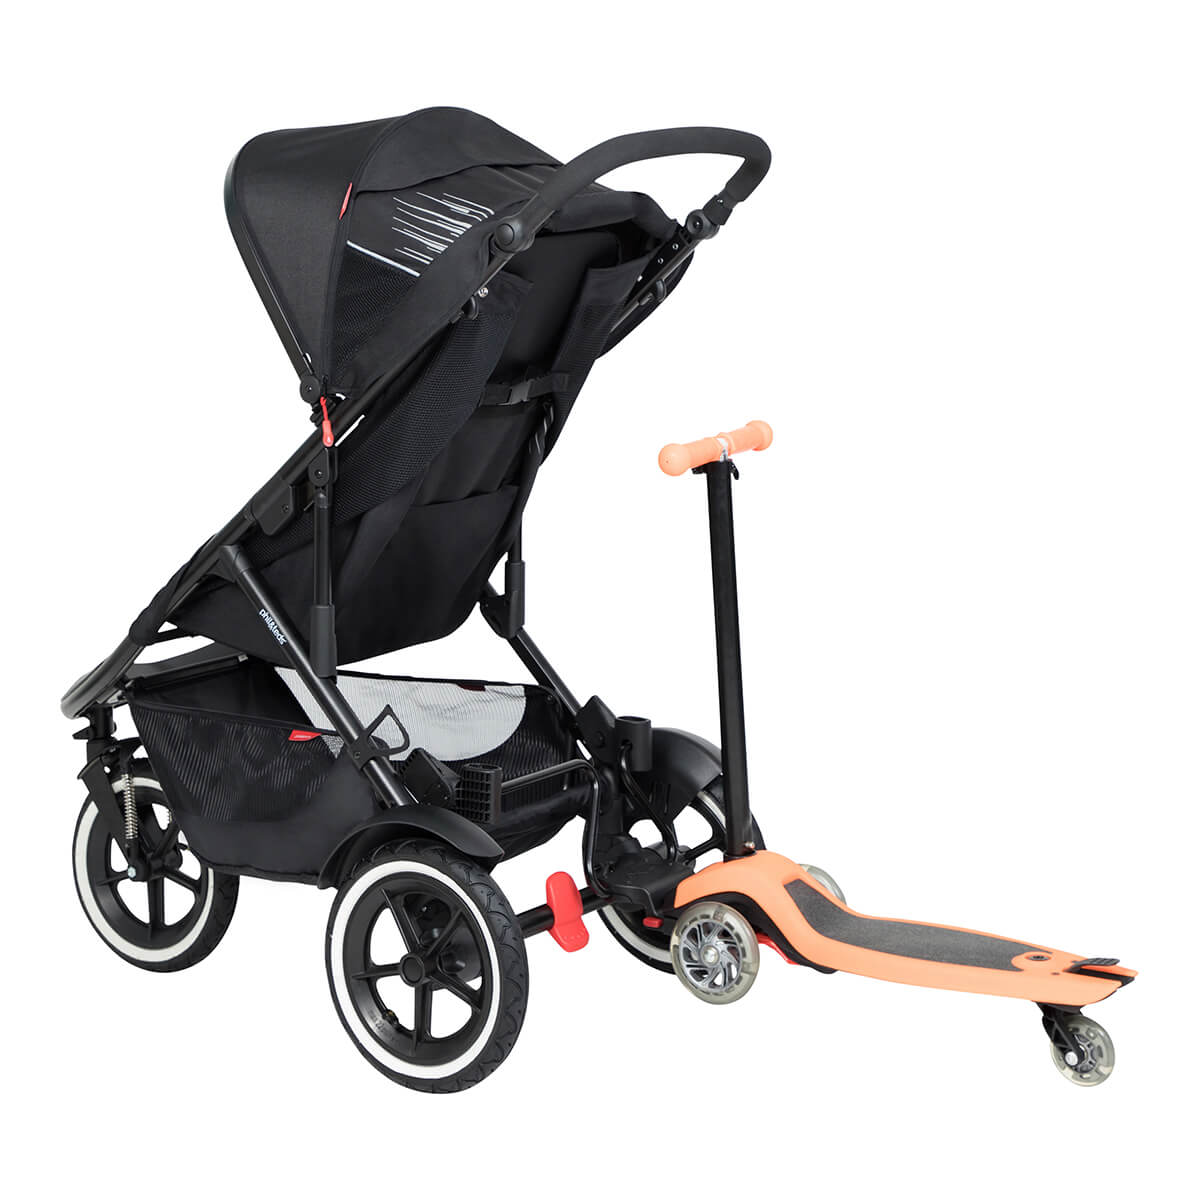 https://cdn.accentuate.io/4513463468128/19440099852472/philteds-sport-buggy-with-freerider-stroller-board-in-rear-v1626486661454.jpg?1200x1200